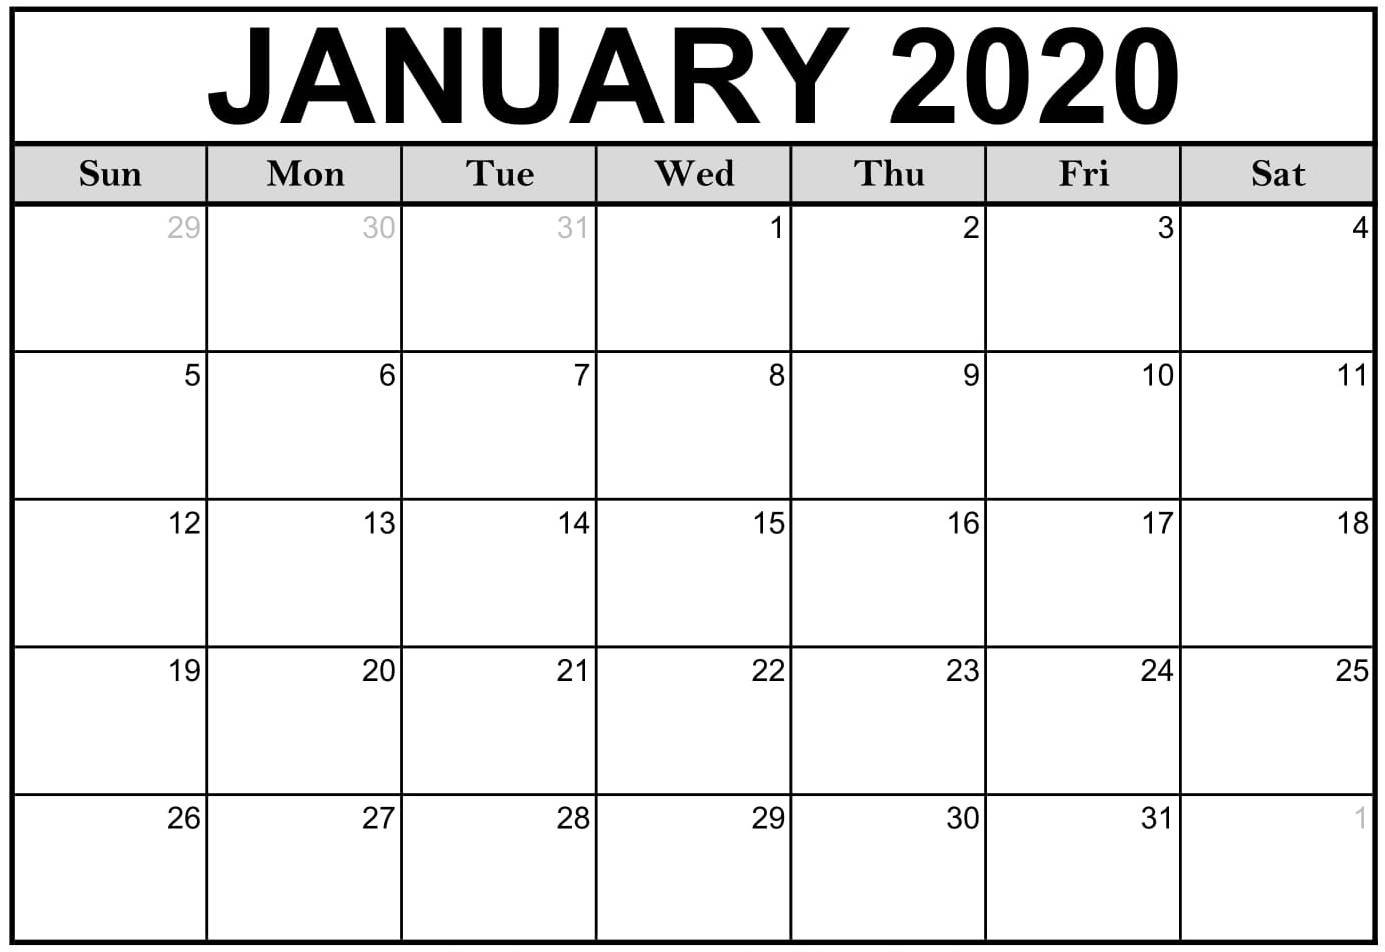 2020 Calendar You Can Edit | Calendar Printables Free Monthly Calender I Can Edit On